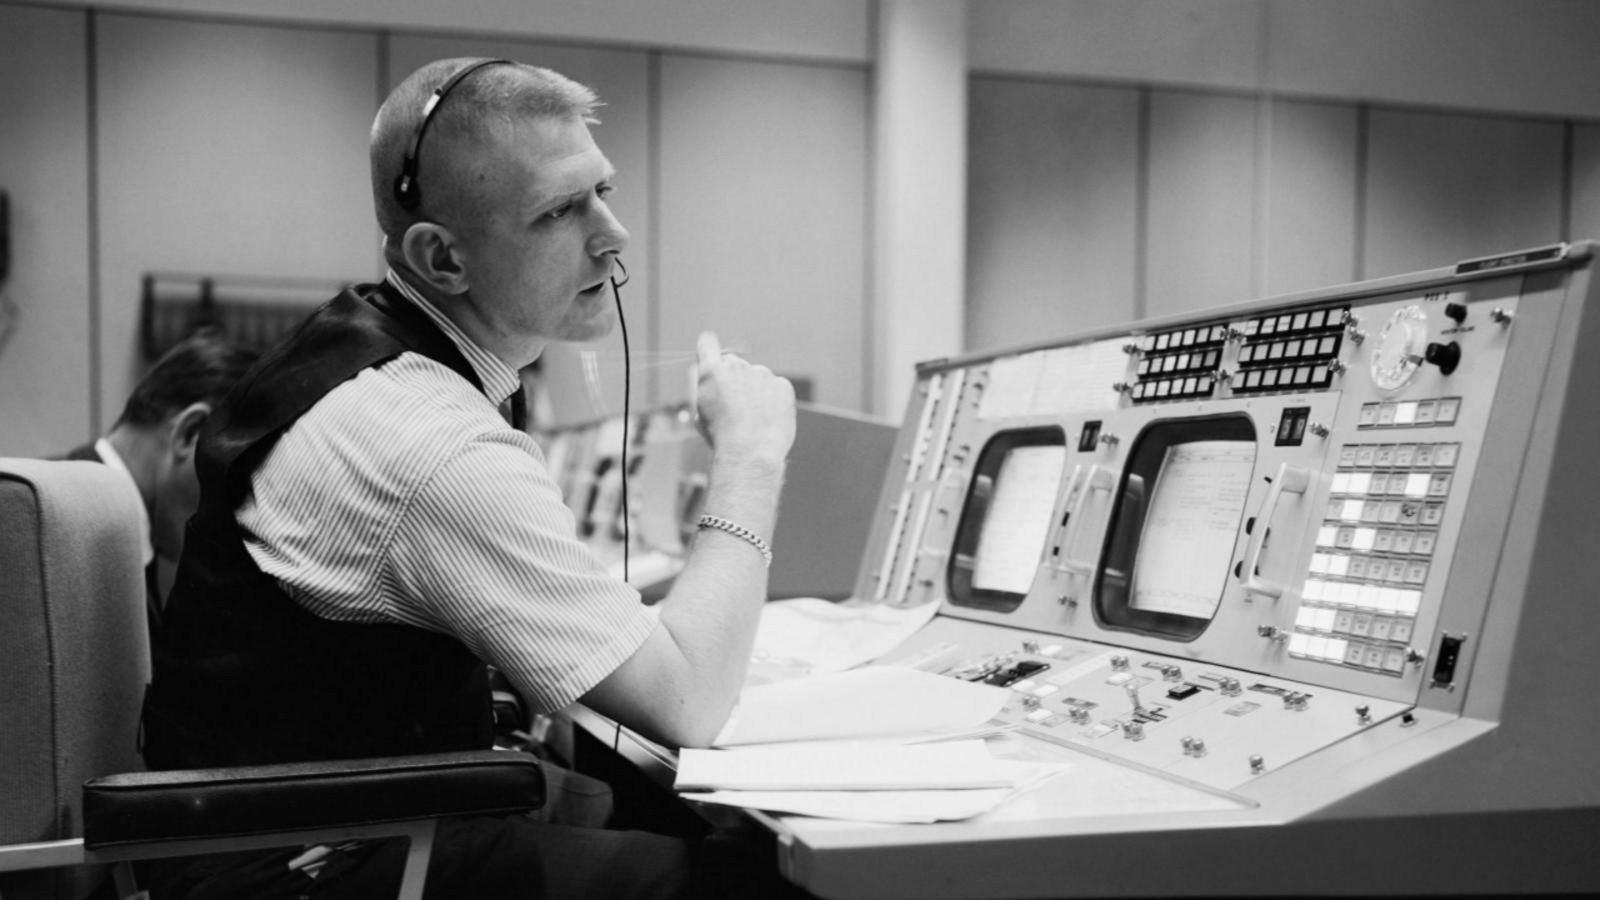 50 Years Later: Apollo 11 flight director recalls final moments before moon landing